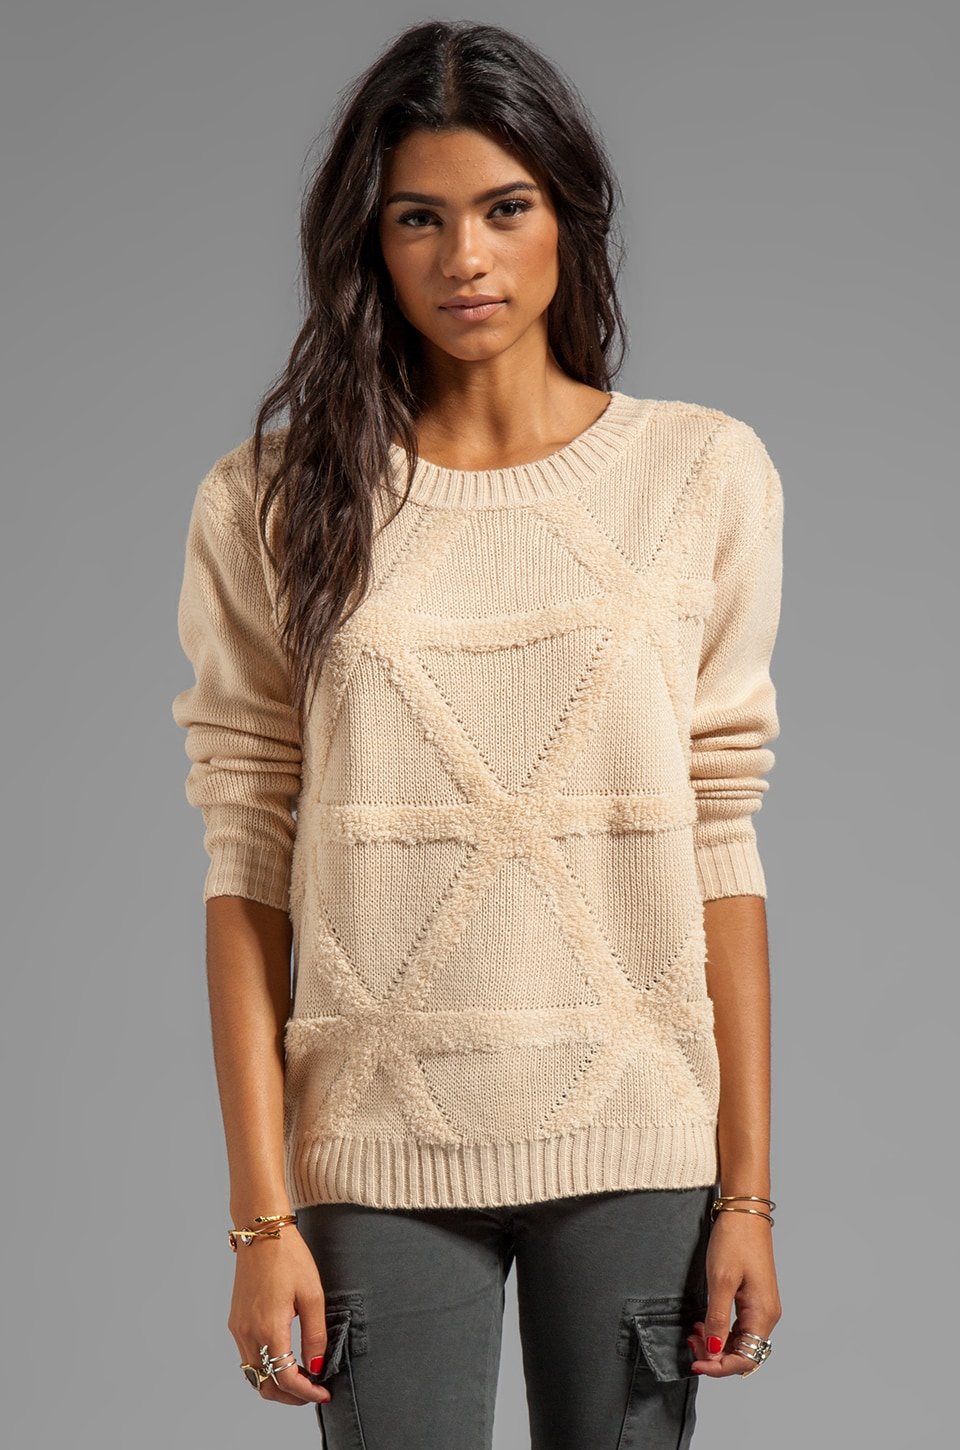 Ash-Rain-Oak Marny Sweater in Bisque